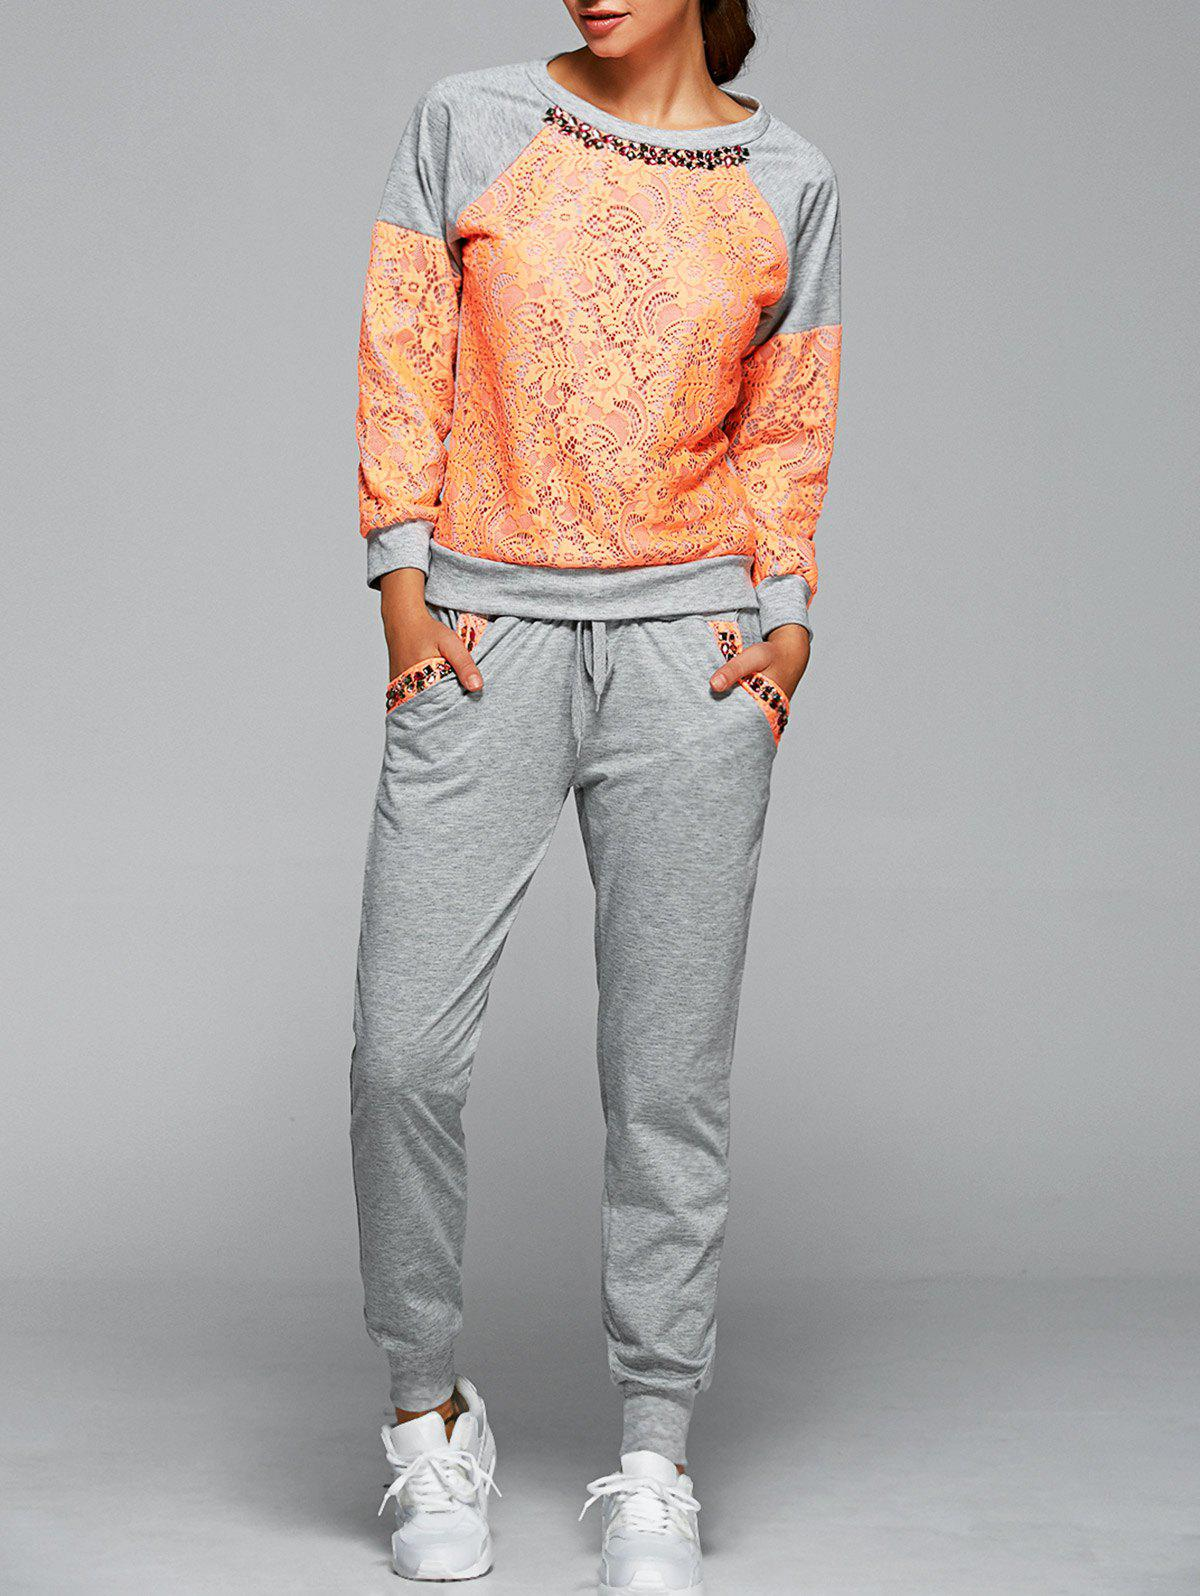 Dentelle Spliced ​​Sweatshirt Avec Pantalon Twinset - Orange XL